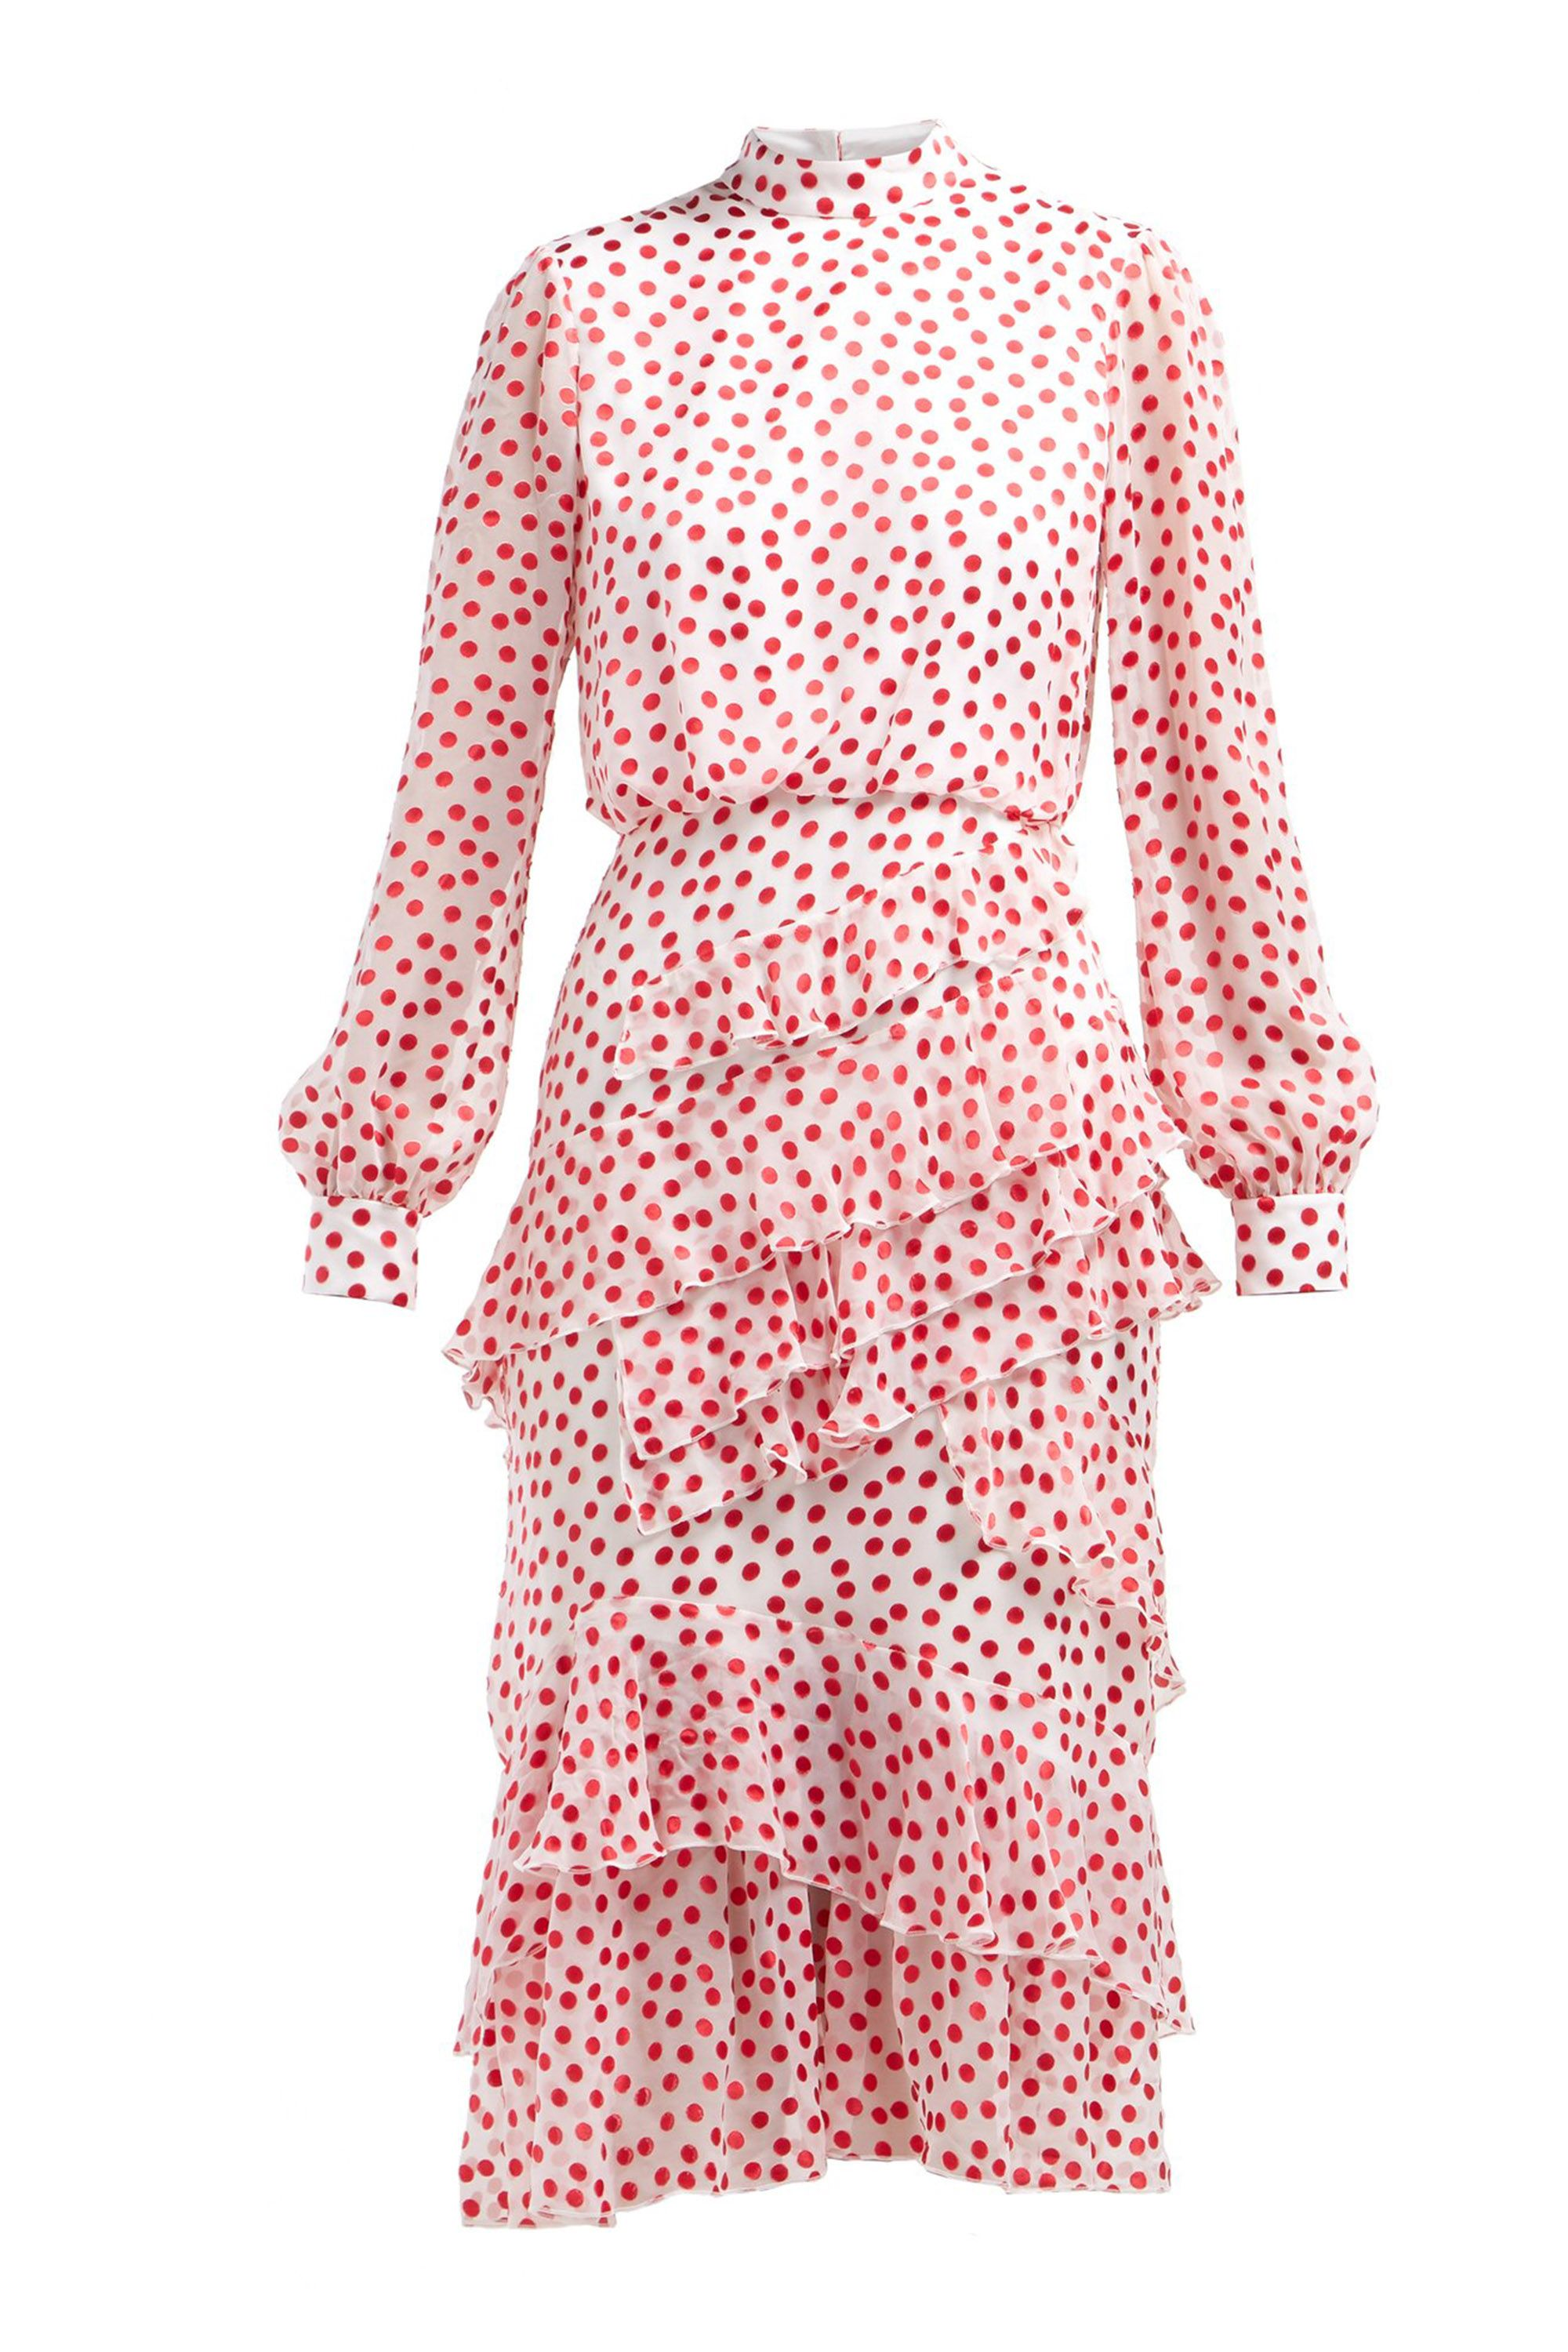 Bridesmaid trends, polkadot dresses